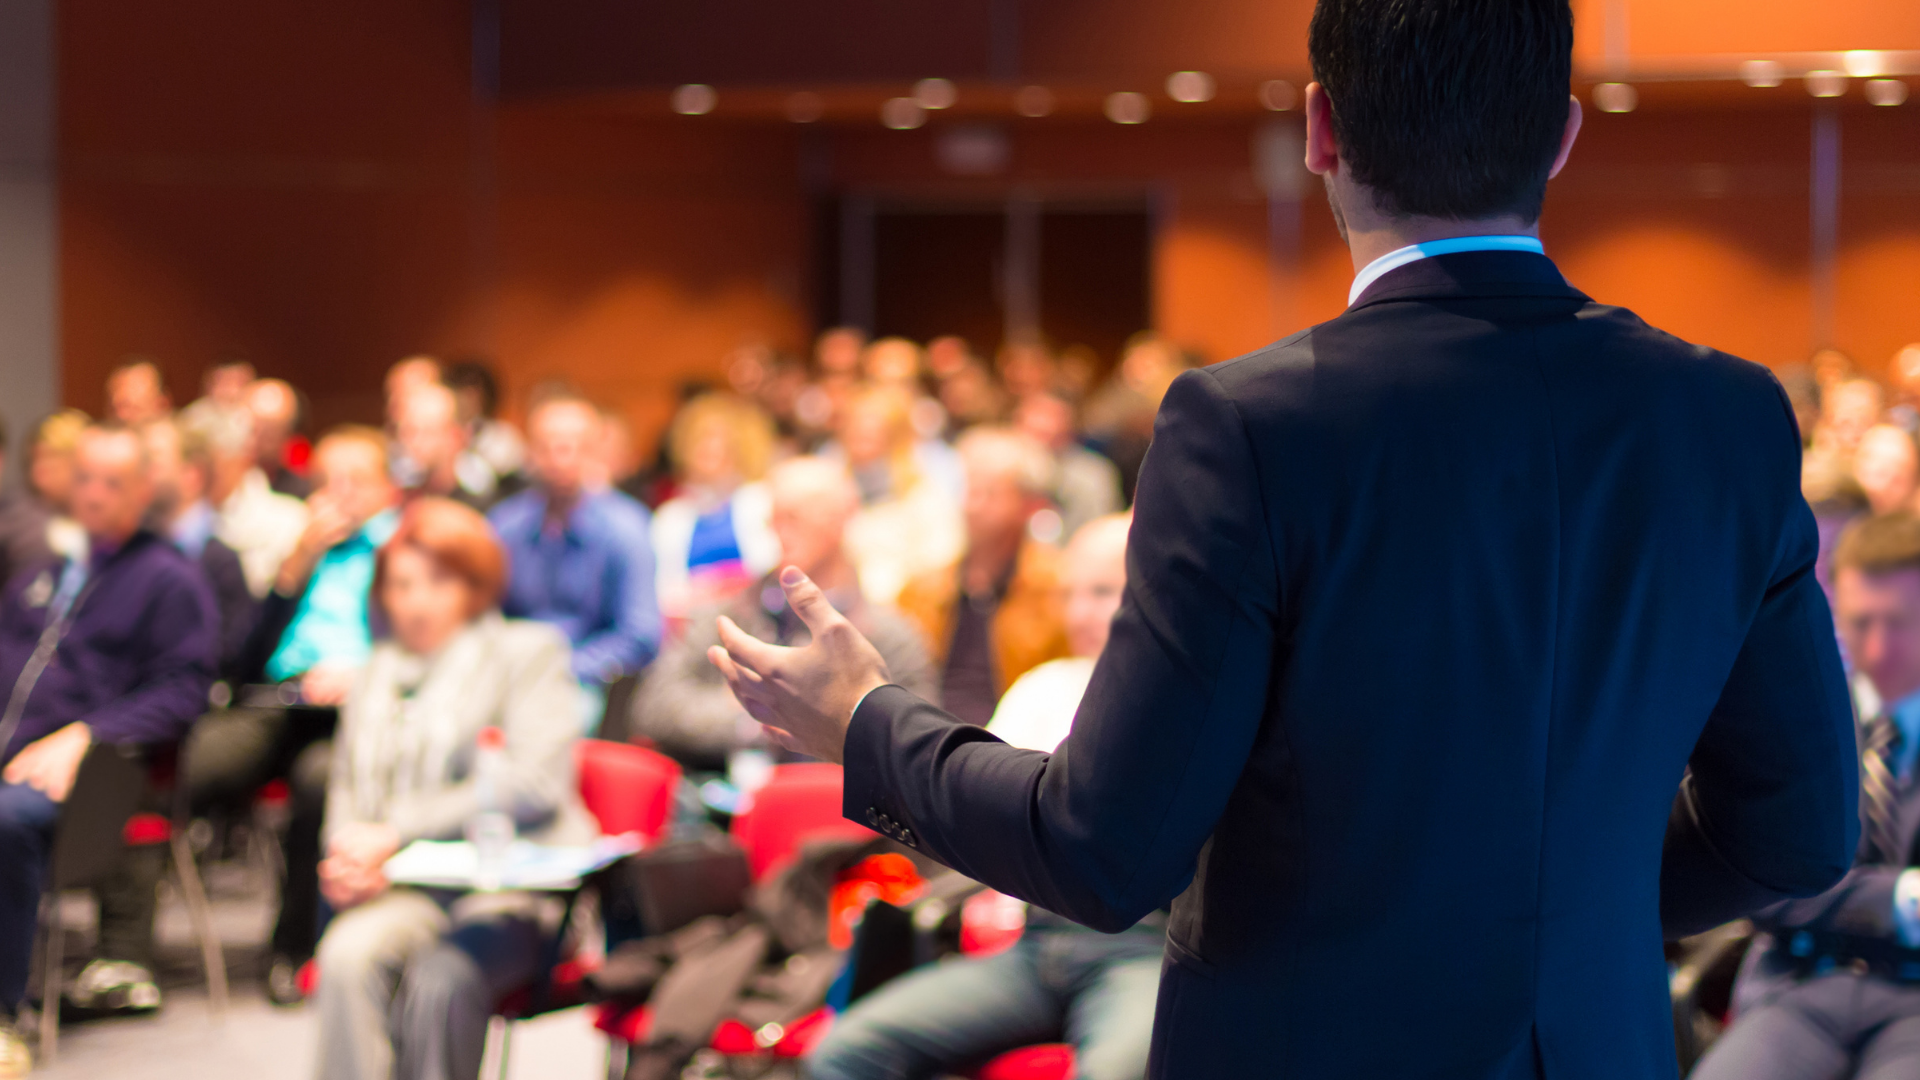 Image shows a conference presenter looking out over conference attendees.